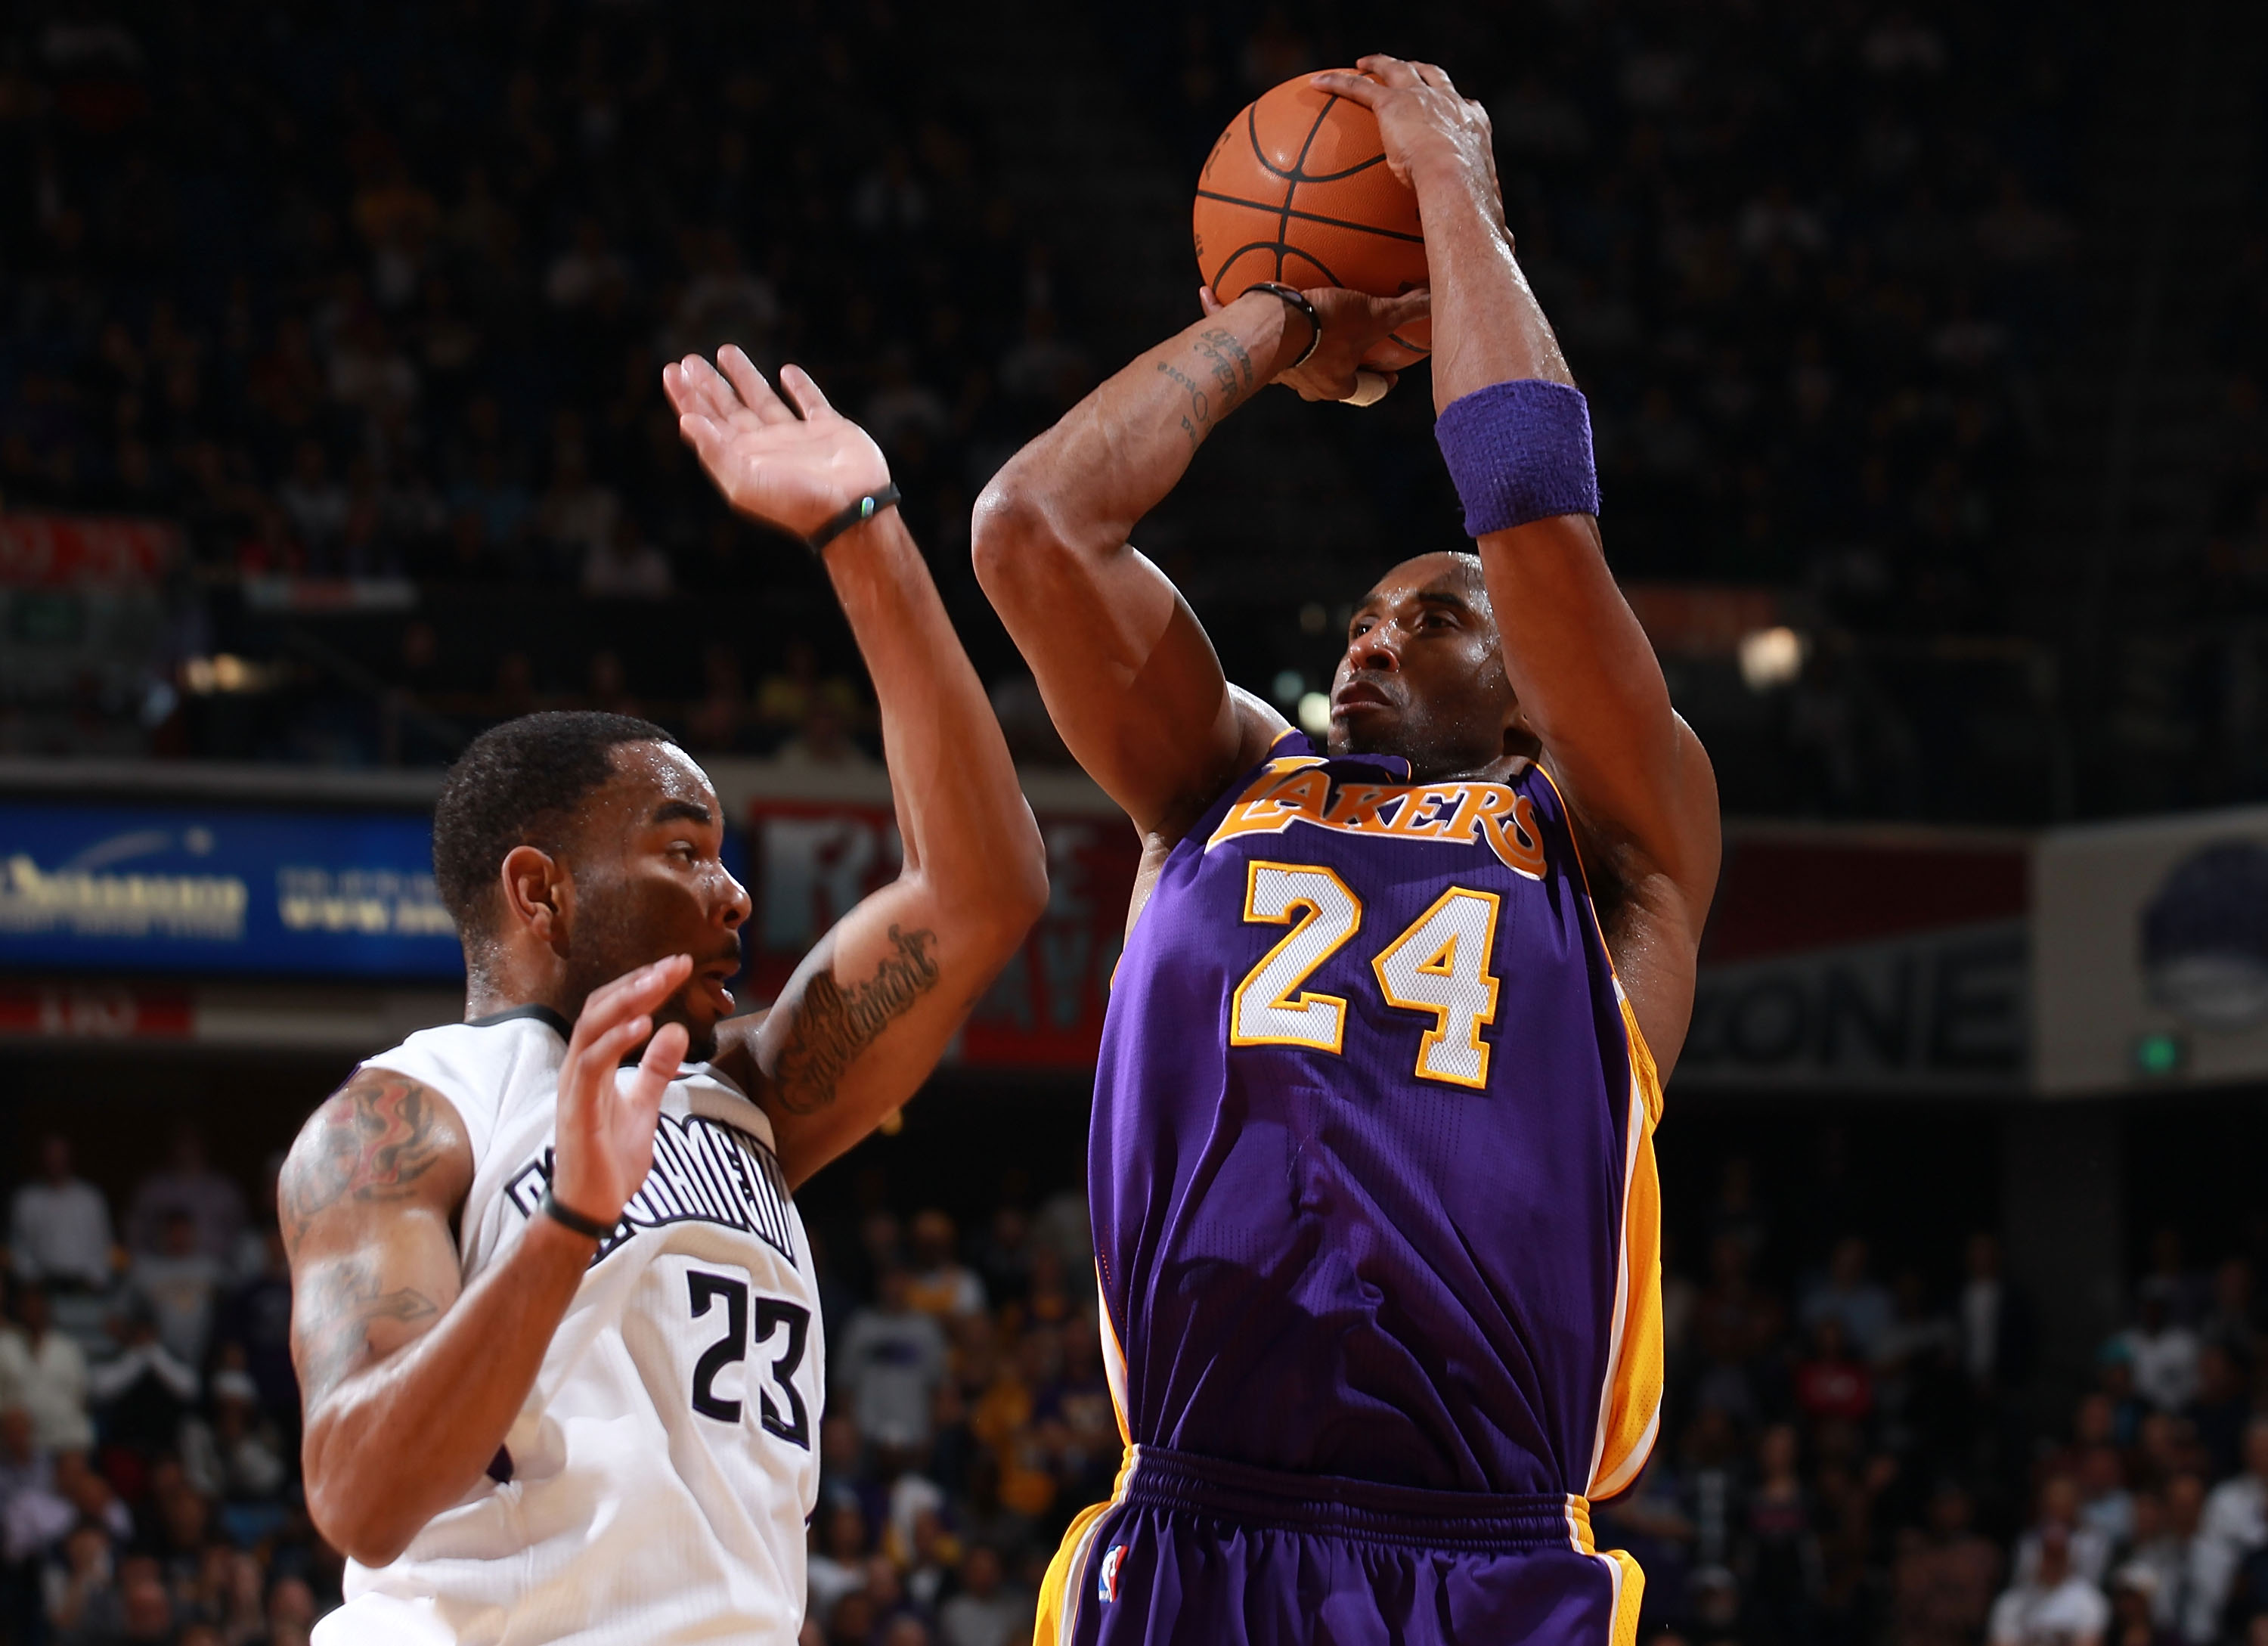 SACRAMENTO, CA - APRIL 13:  Kobe Bryant #24 of the Los Angeles Lakers shoots against Marcus Thornton #23 of the Sacramento Kings look on against  on April 13, 2011 at Power Balence Pavilion in Sacramento, California. NOTE TO USER: User expressly acknowled